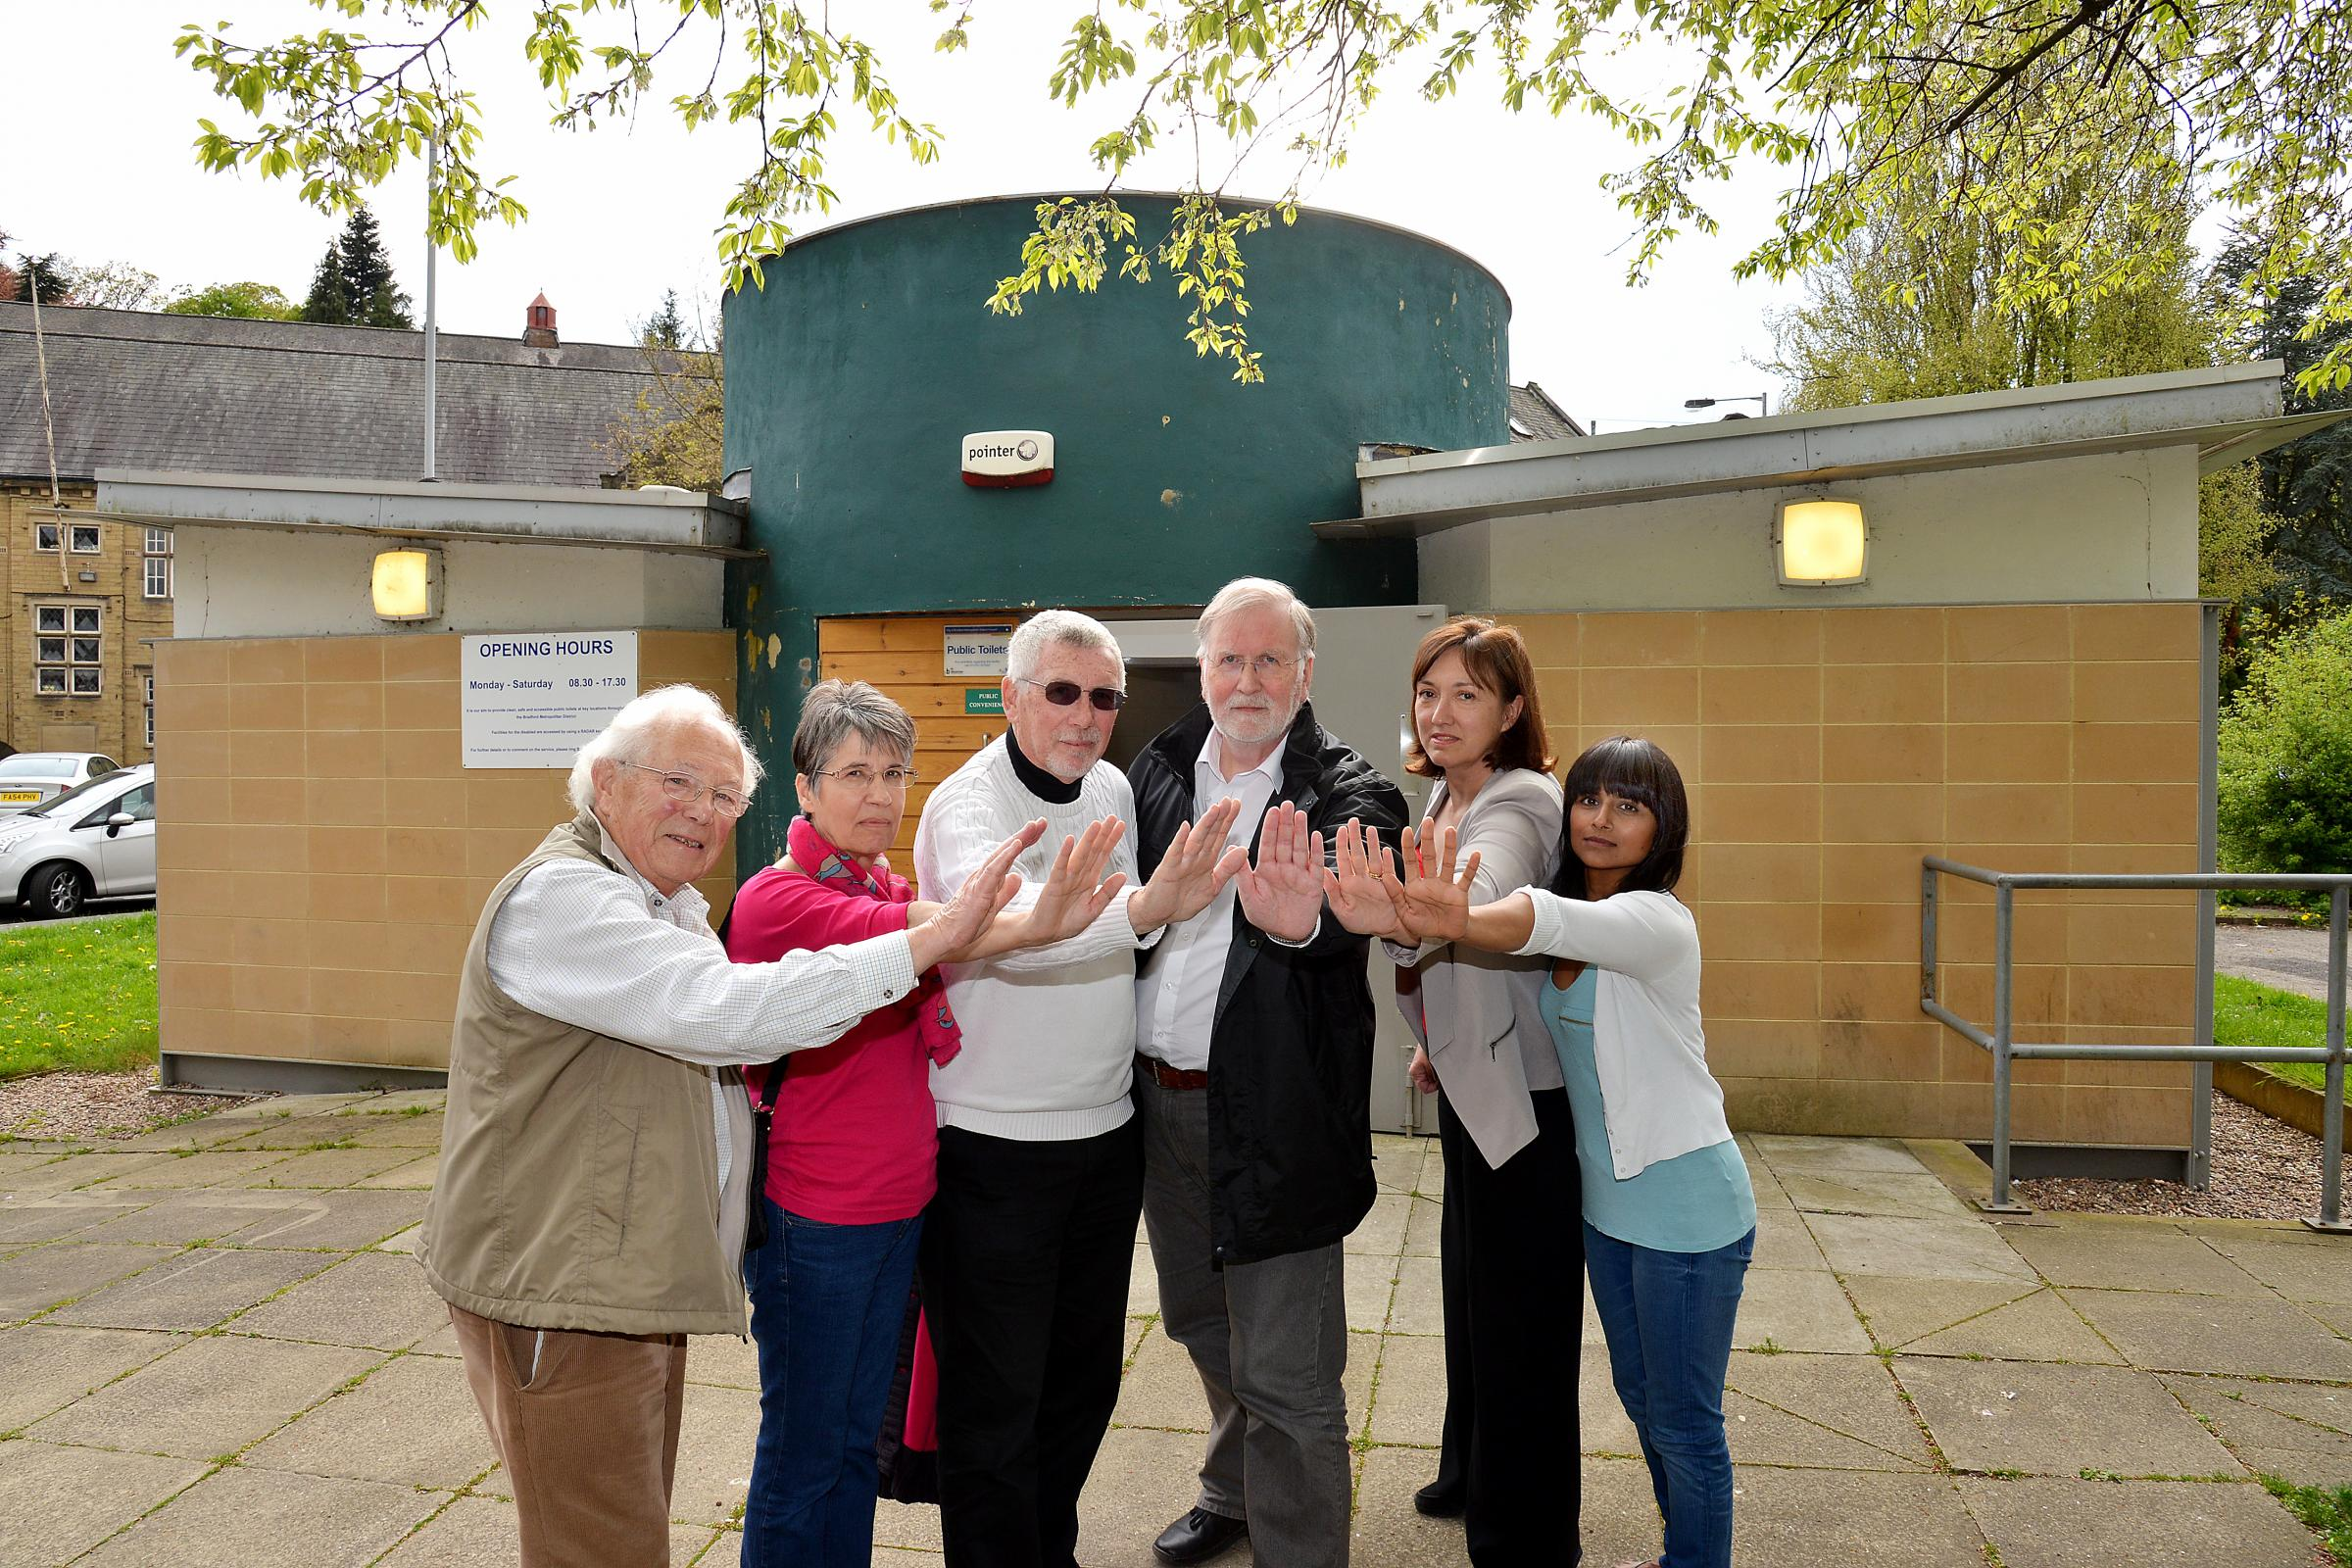 Campaigners against closure (from left) Donald Wood, of Bingley and Airedale Rotary, Jackie and Michael Church, Terry Brown, of the Civic Trust, Ros Dawson, of Bingley Community Council Group, and Jag Picknett, of the WI